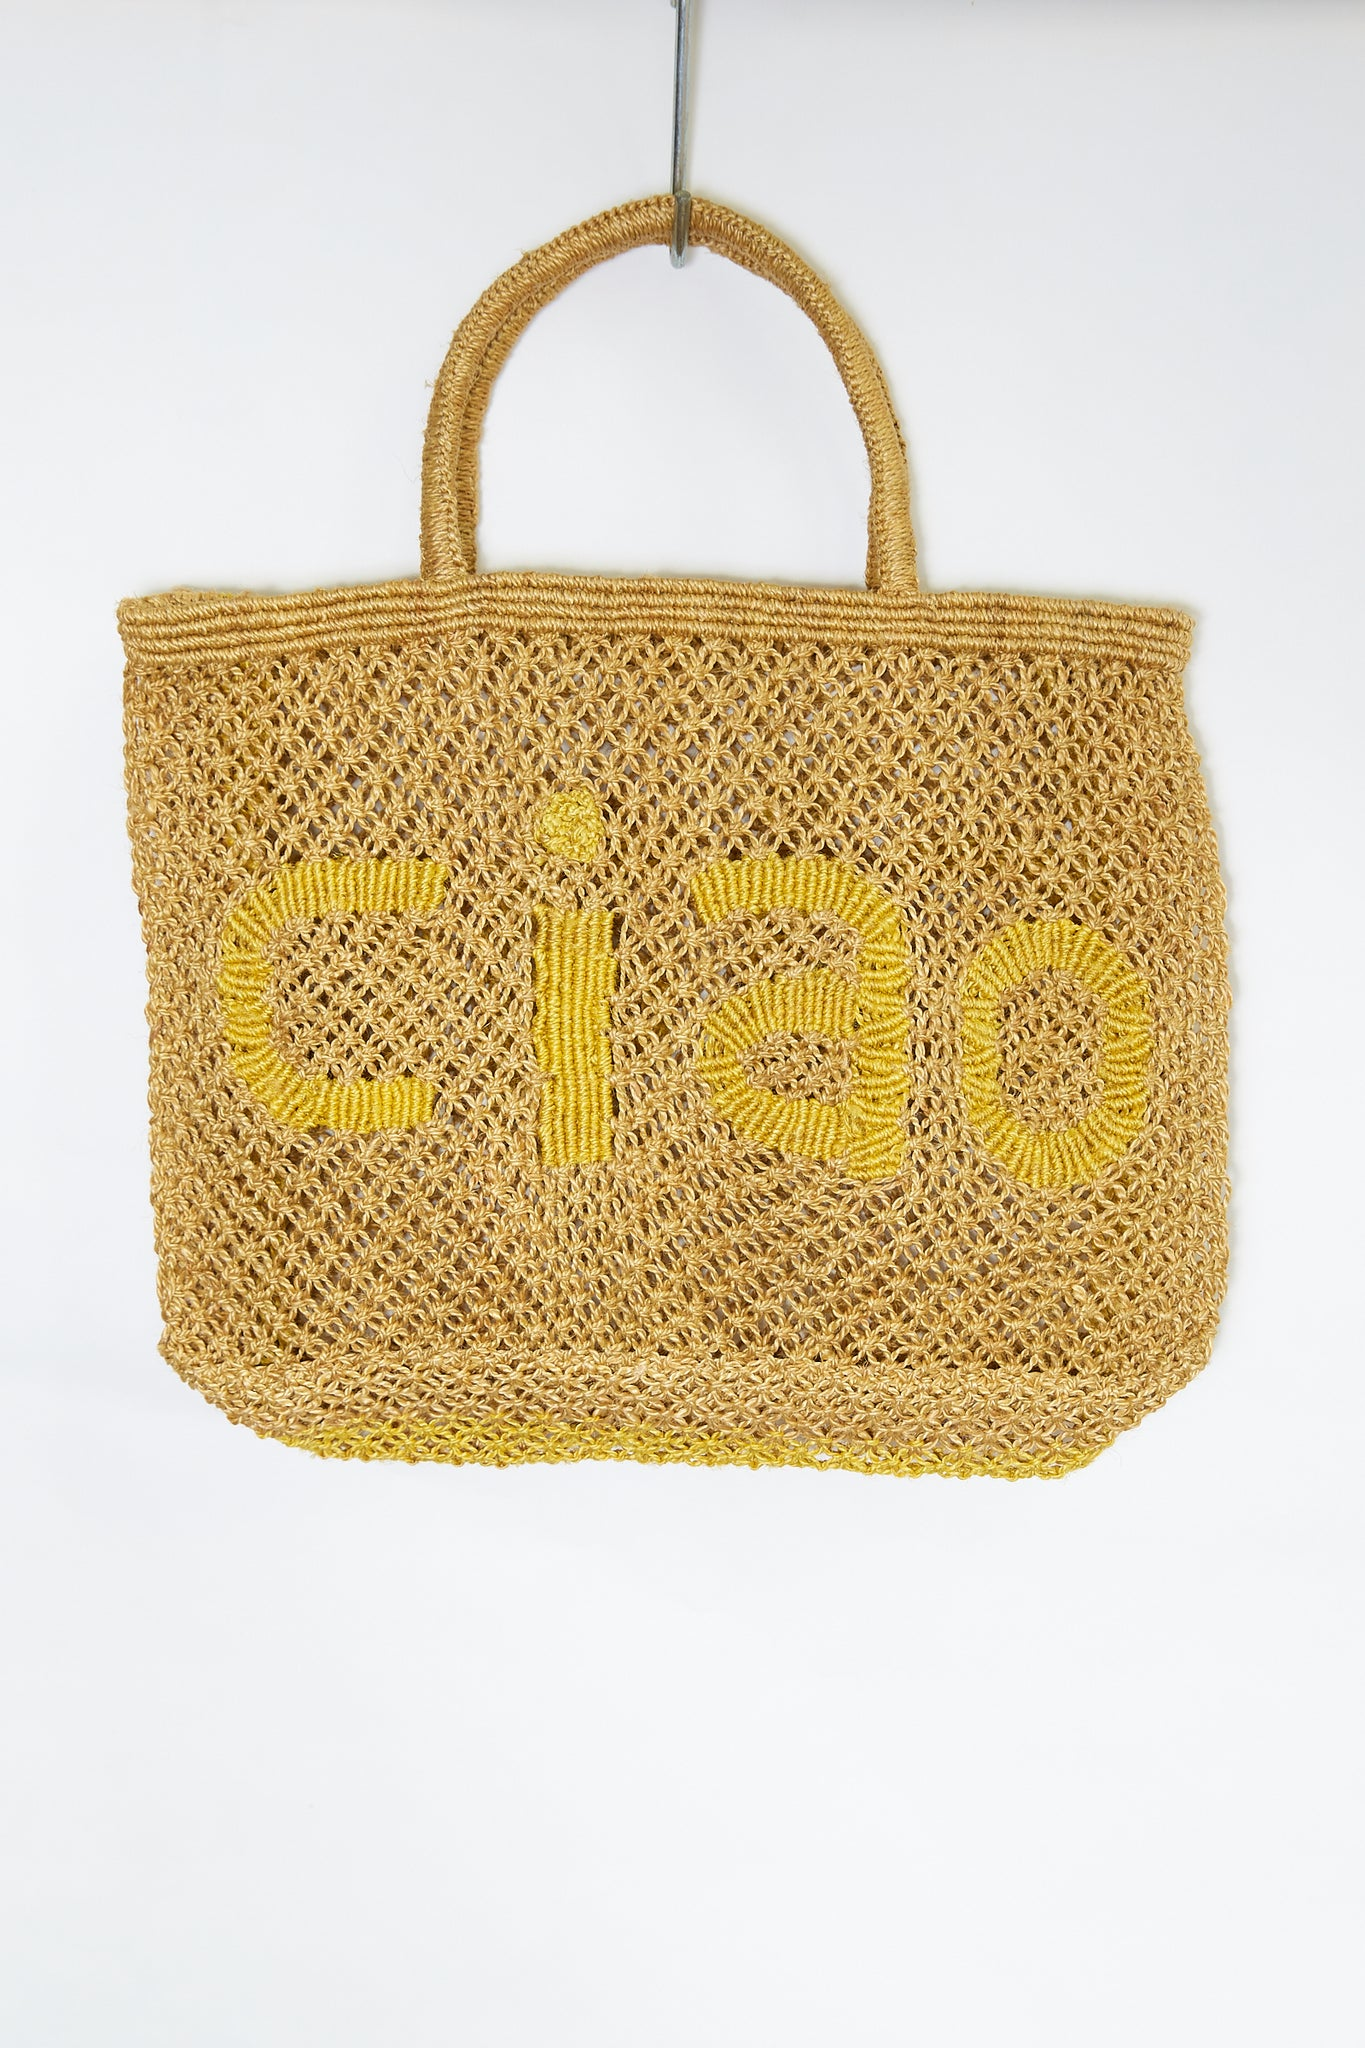 Ciao-Mustard with yellow